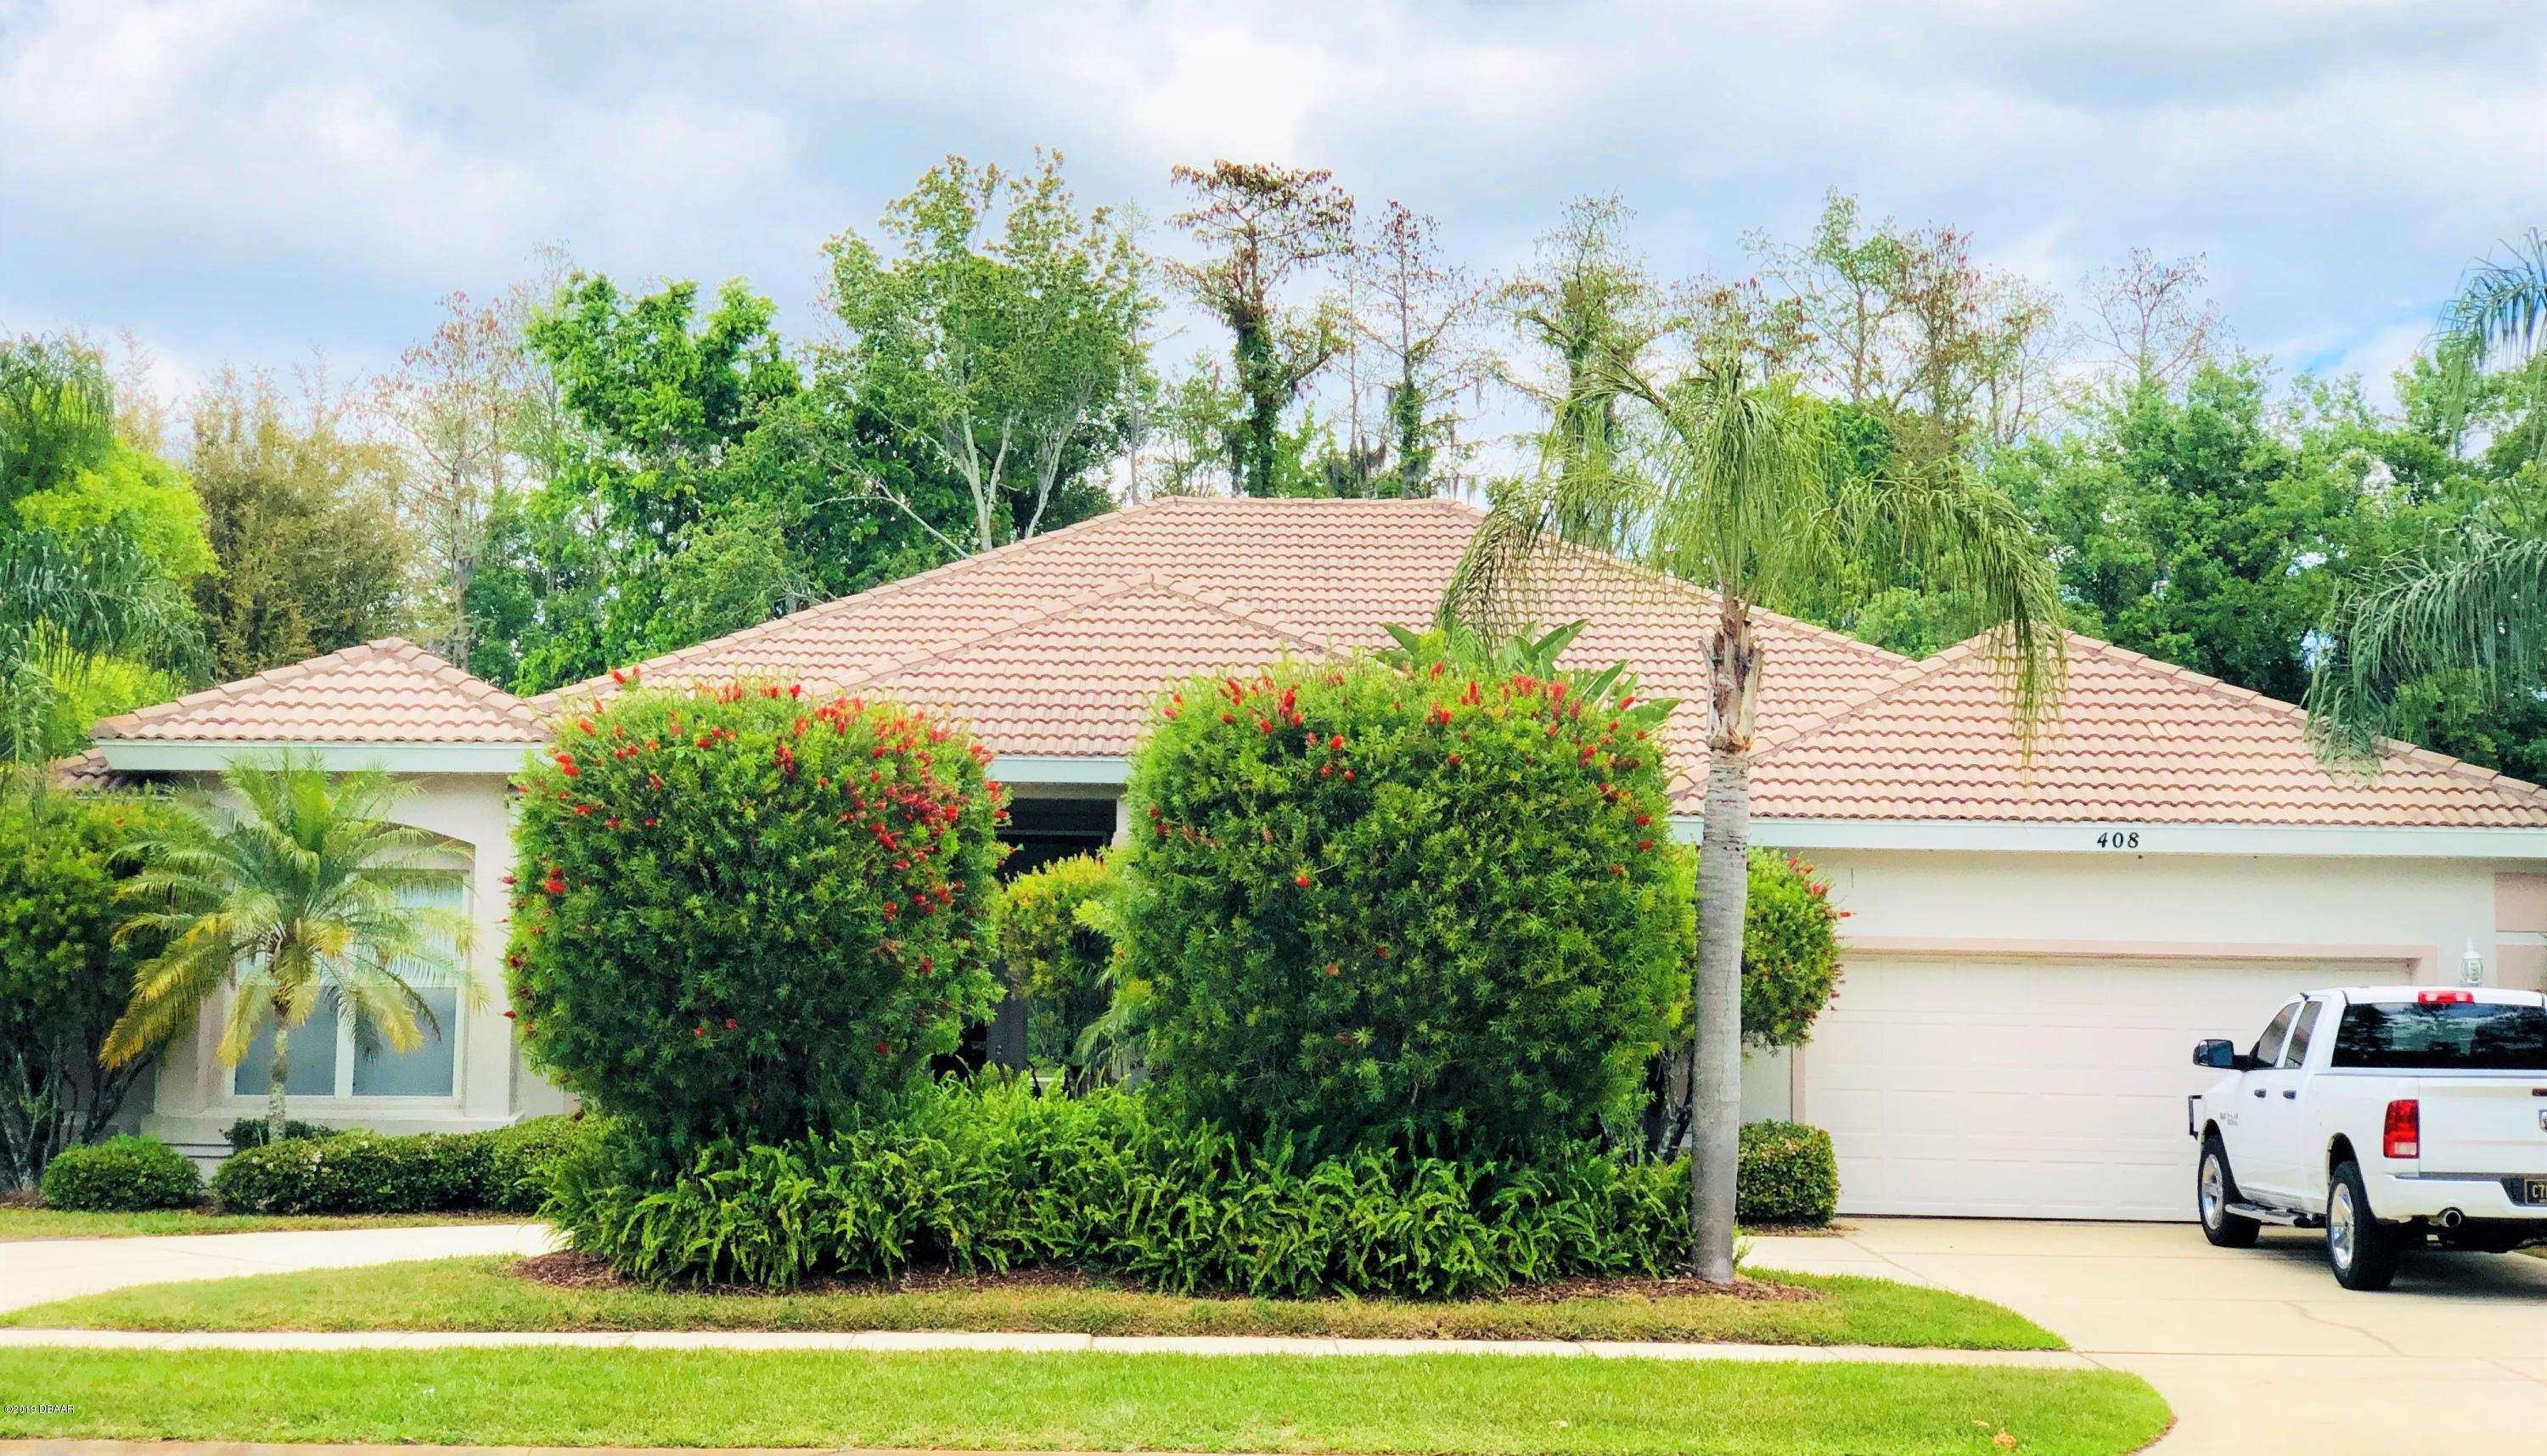 408 Sea Duck Drive, one of homes for sale in South Daytona